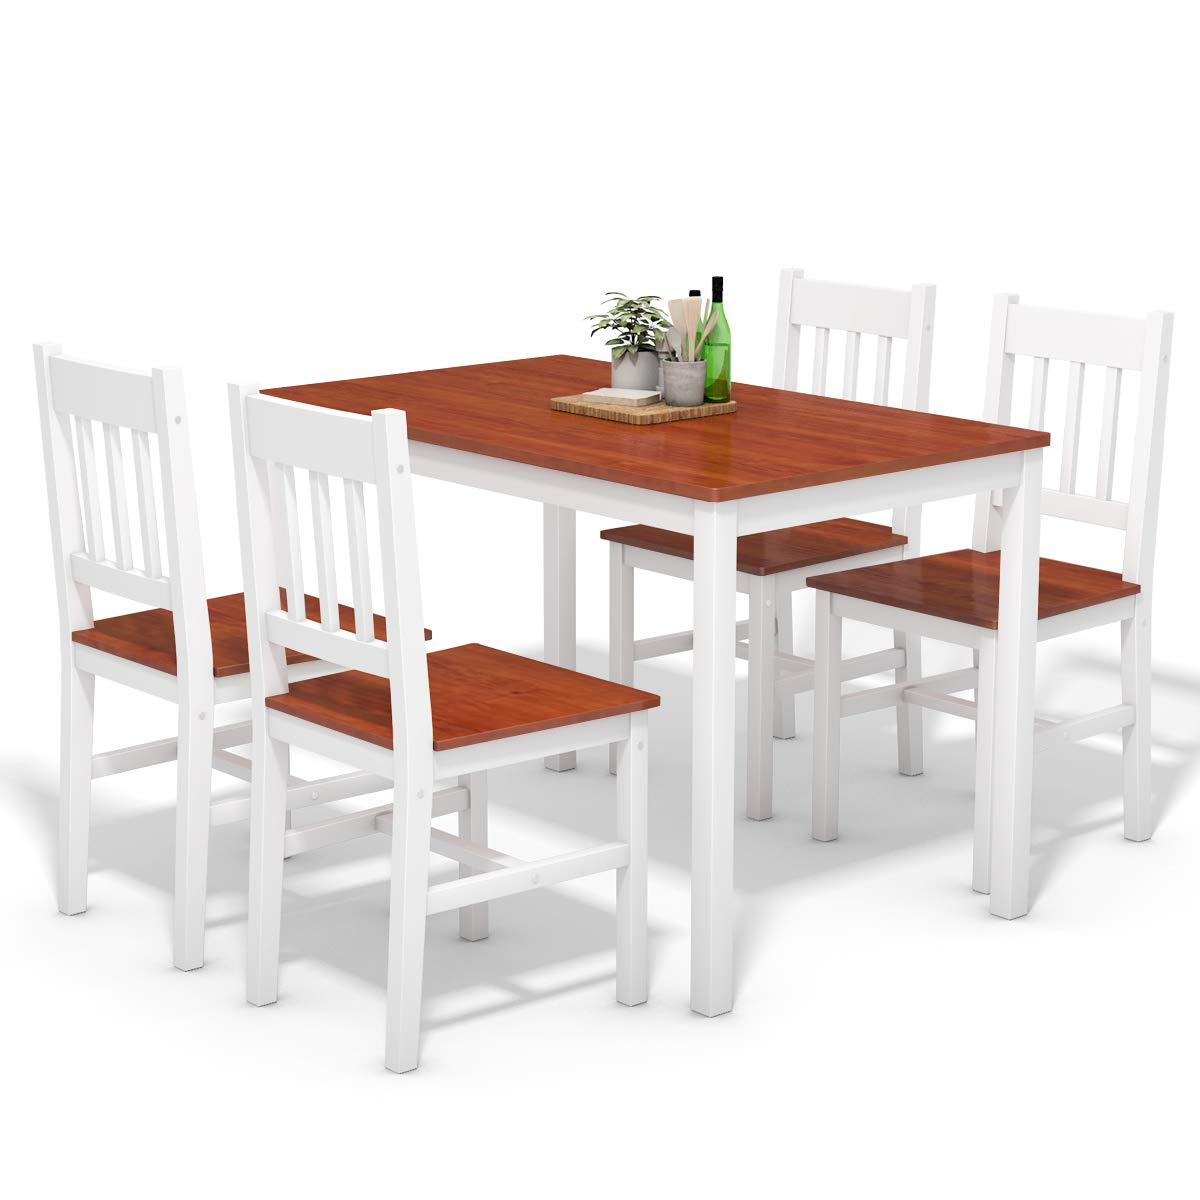 Giantex 5 Piece Wood Dining Table Set 4 Chairs Home Kitchen Breakfast Furniture White/&Walnut